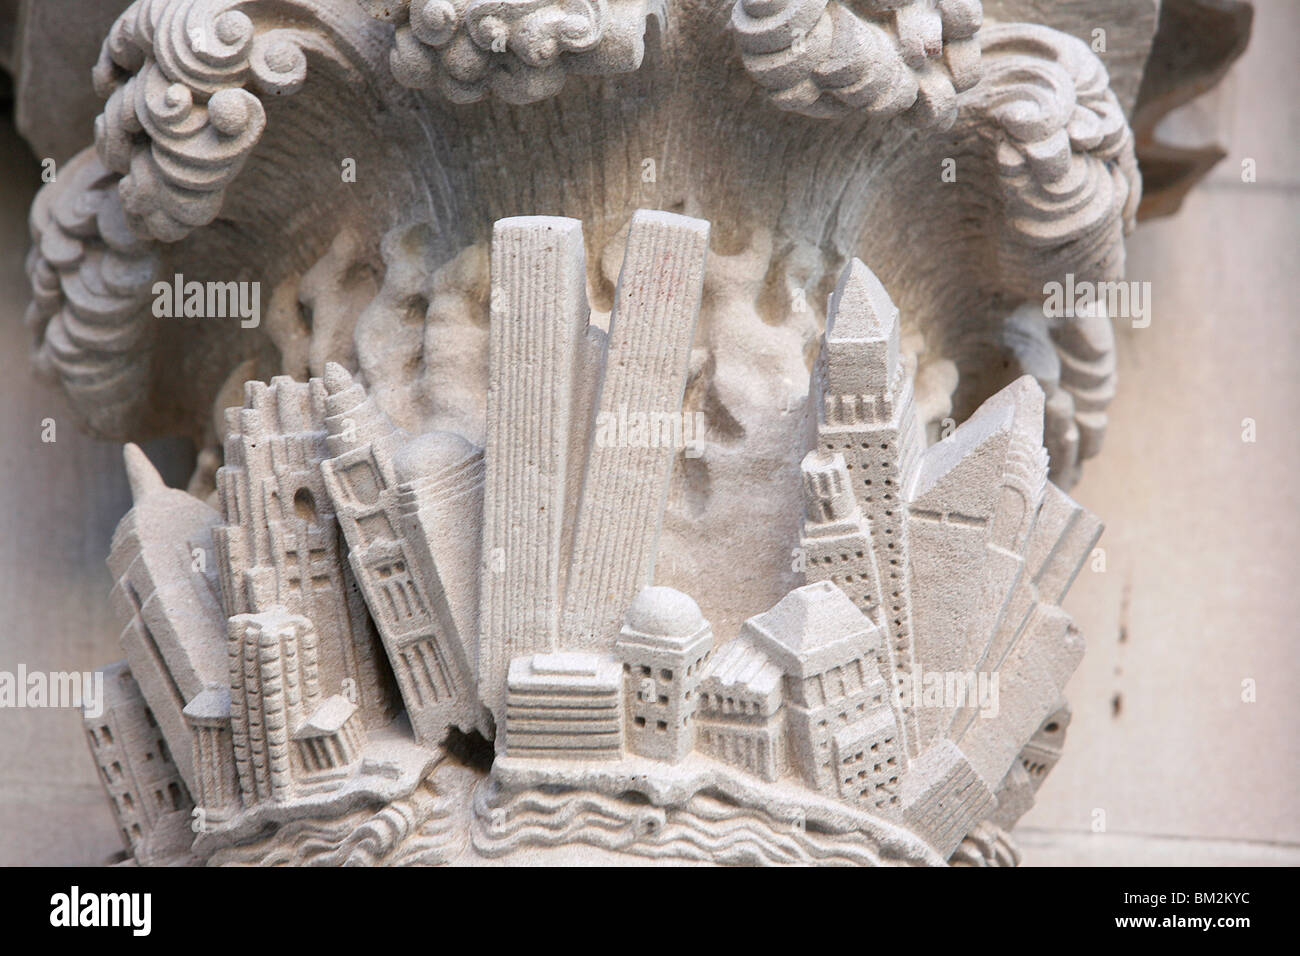 Apocalypse of the Twin Towers, St. John the Divine cathedral, New York, USA - Stock Image